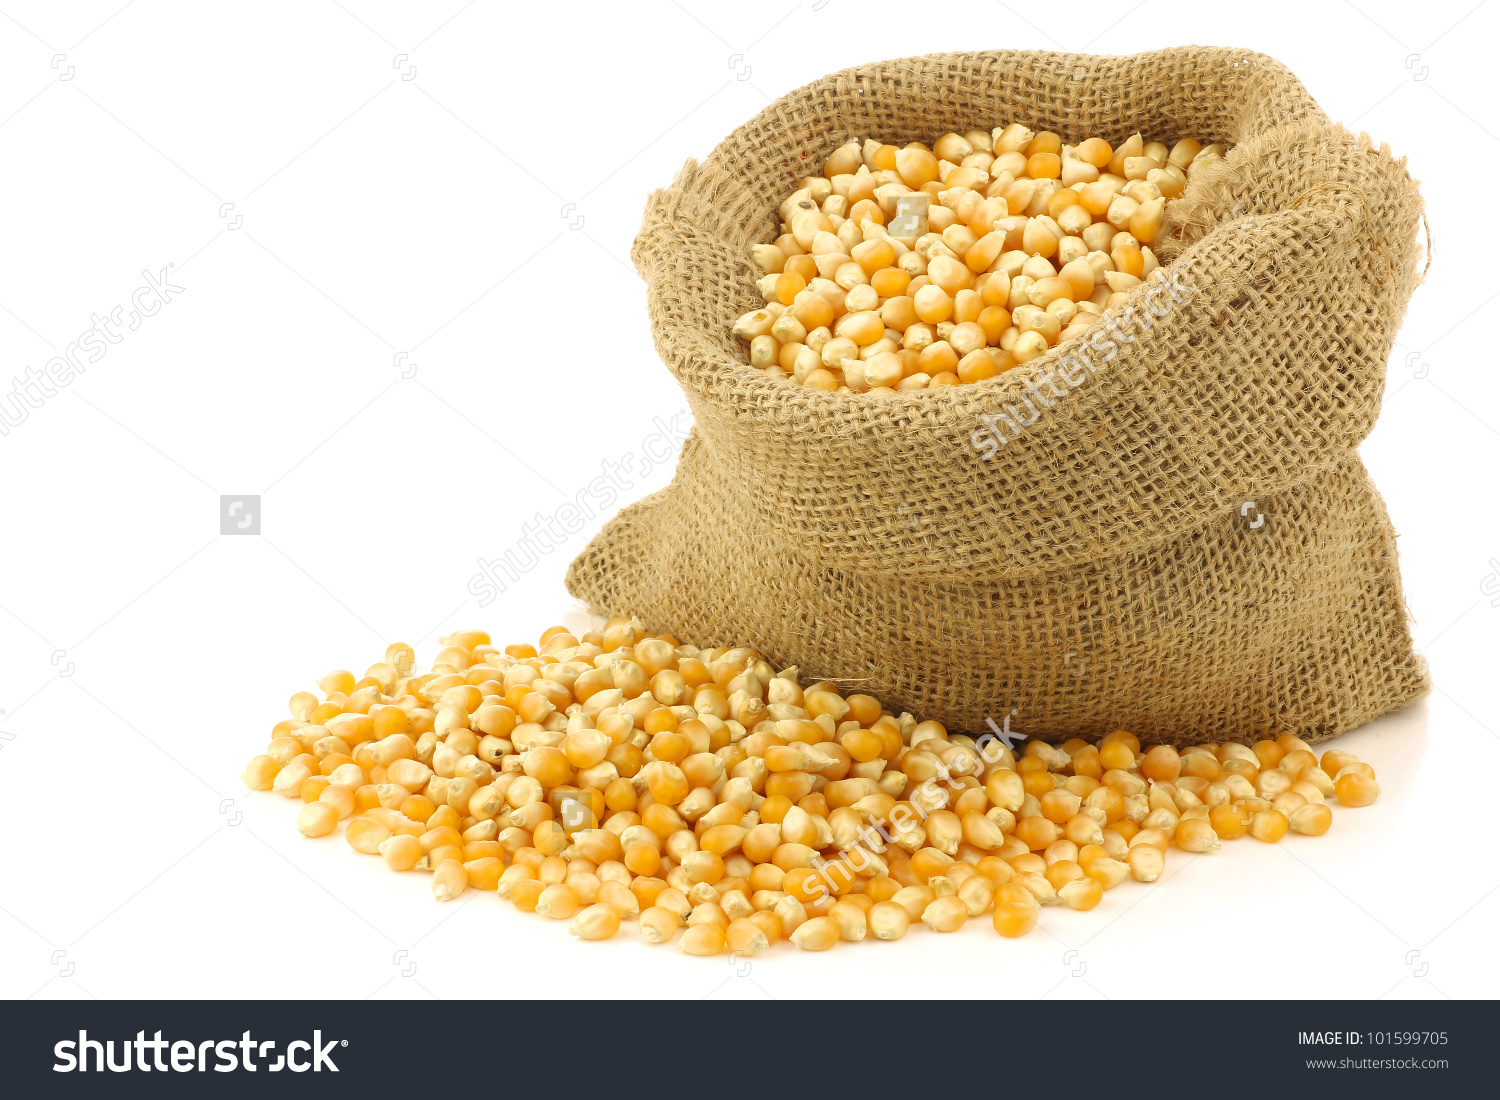 Yellow Corn Grain Burlap Bag On Stock Photo 101599705.